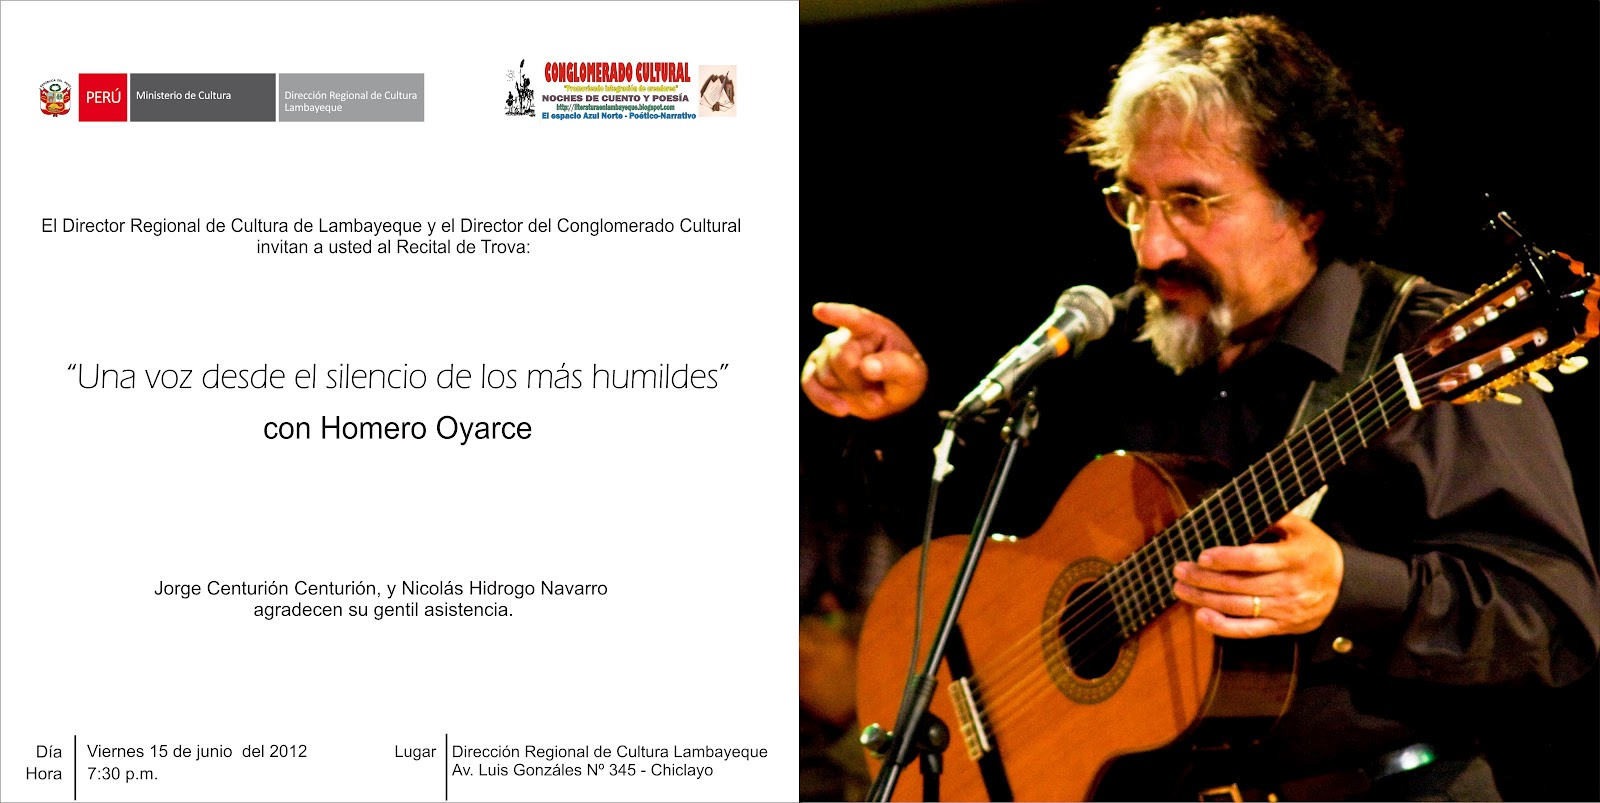 Lambayeque Vivo Recital Trova Homero Oyarce